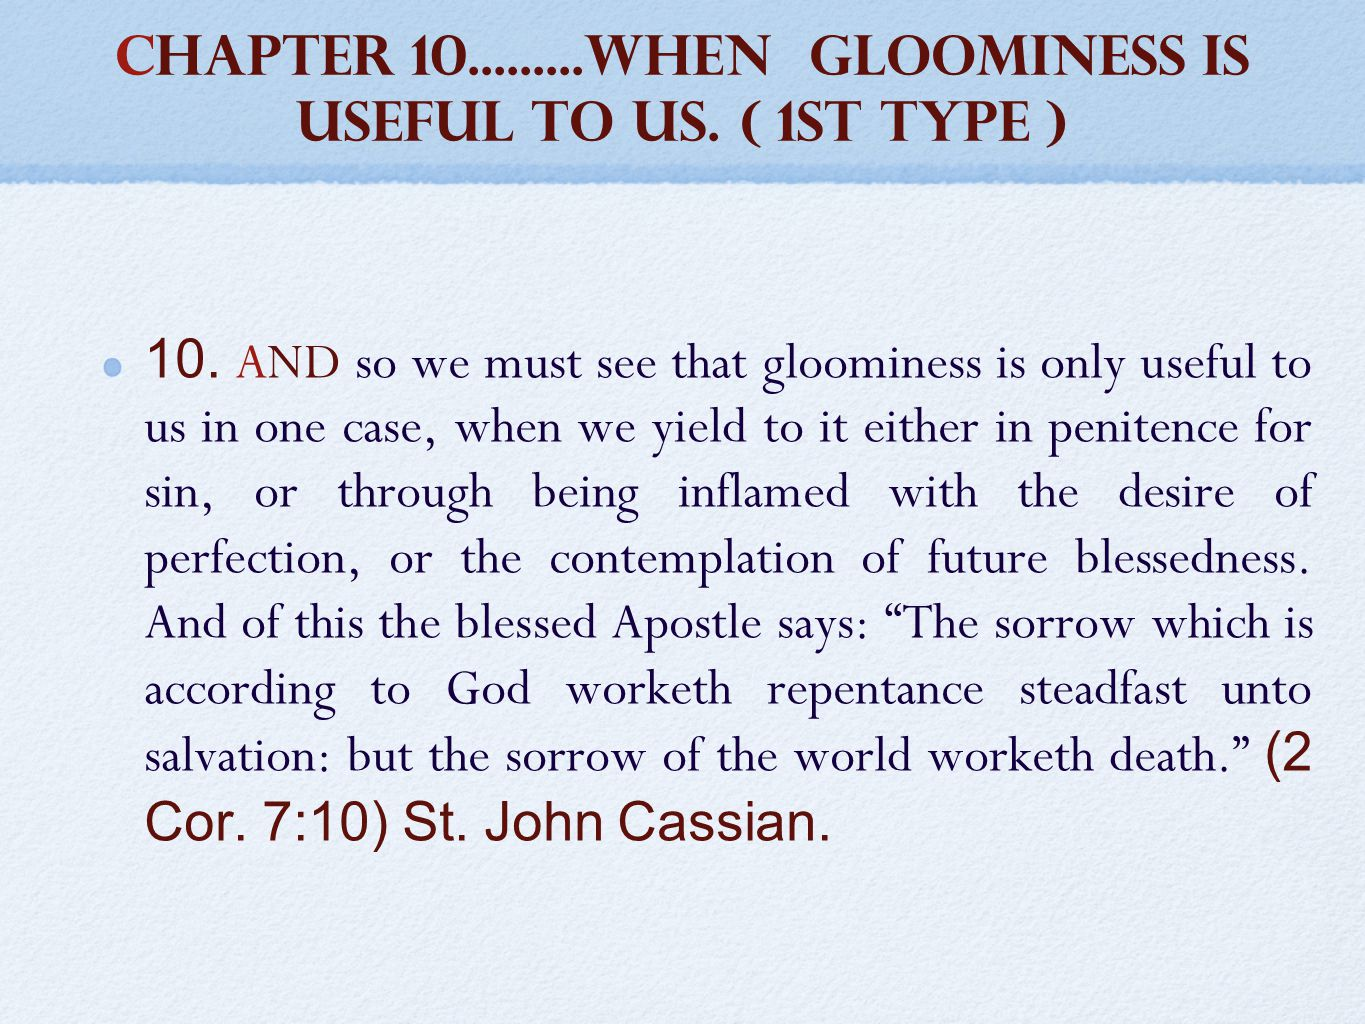 CHAPTER 10.........when gloominess is useful to us.